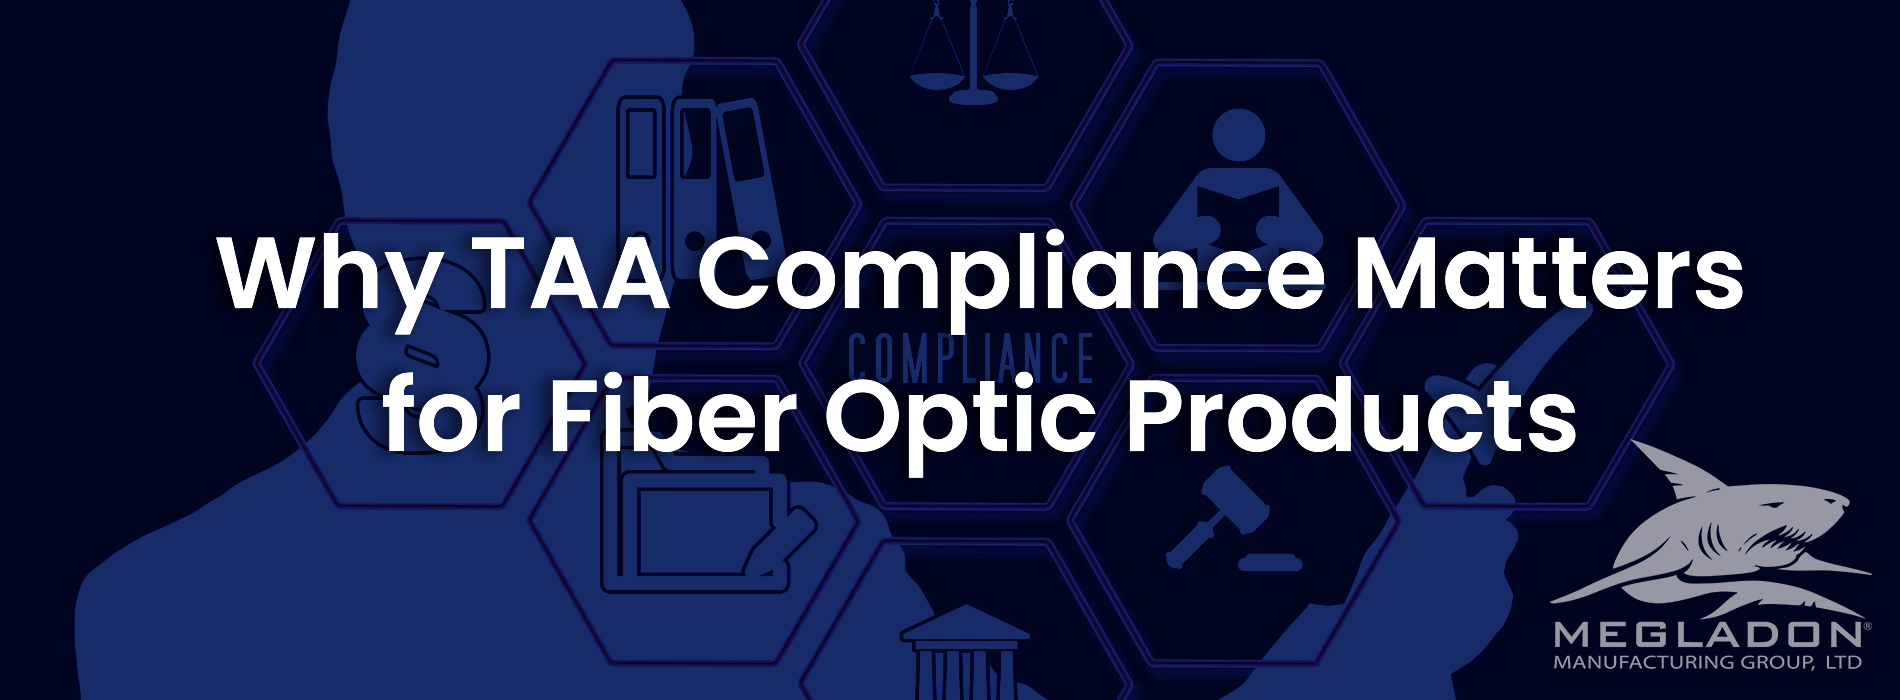 Why TAA Compliance Matters for Fiber Optic Products